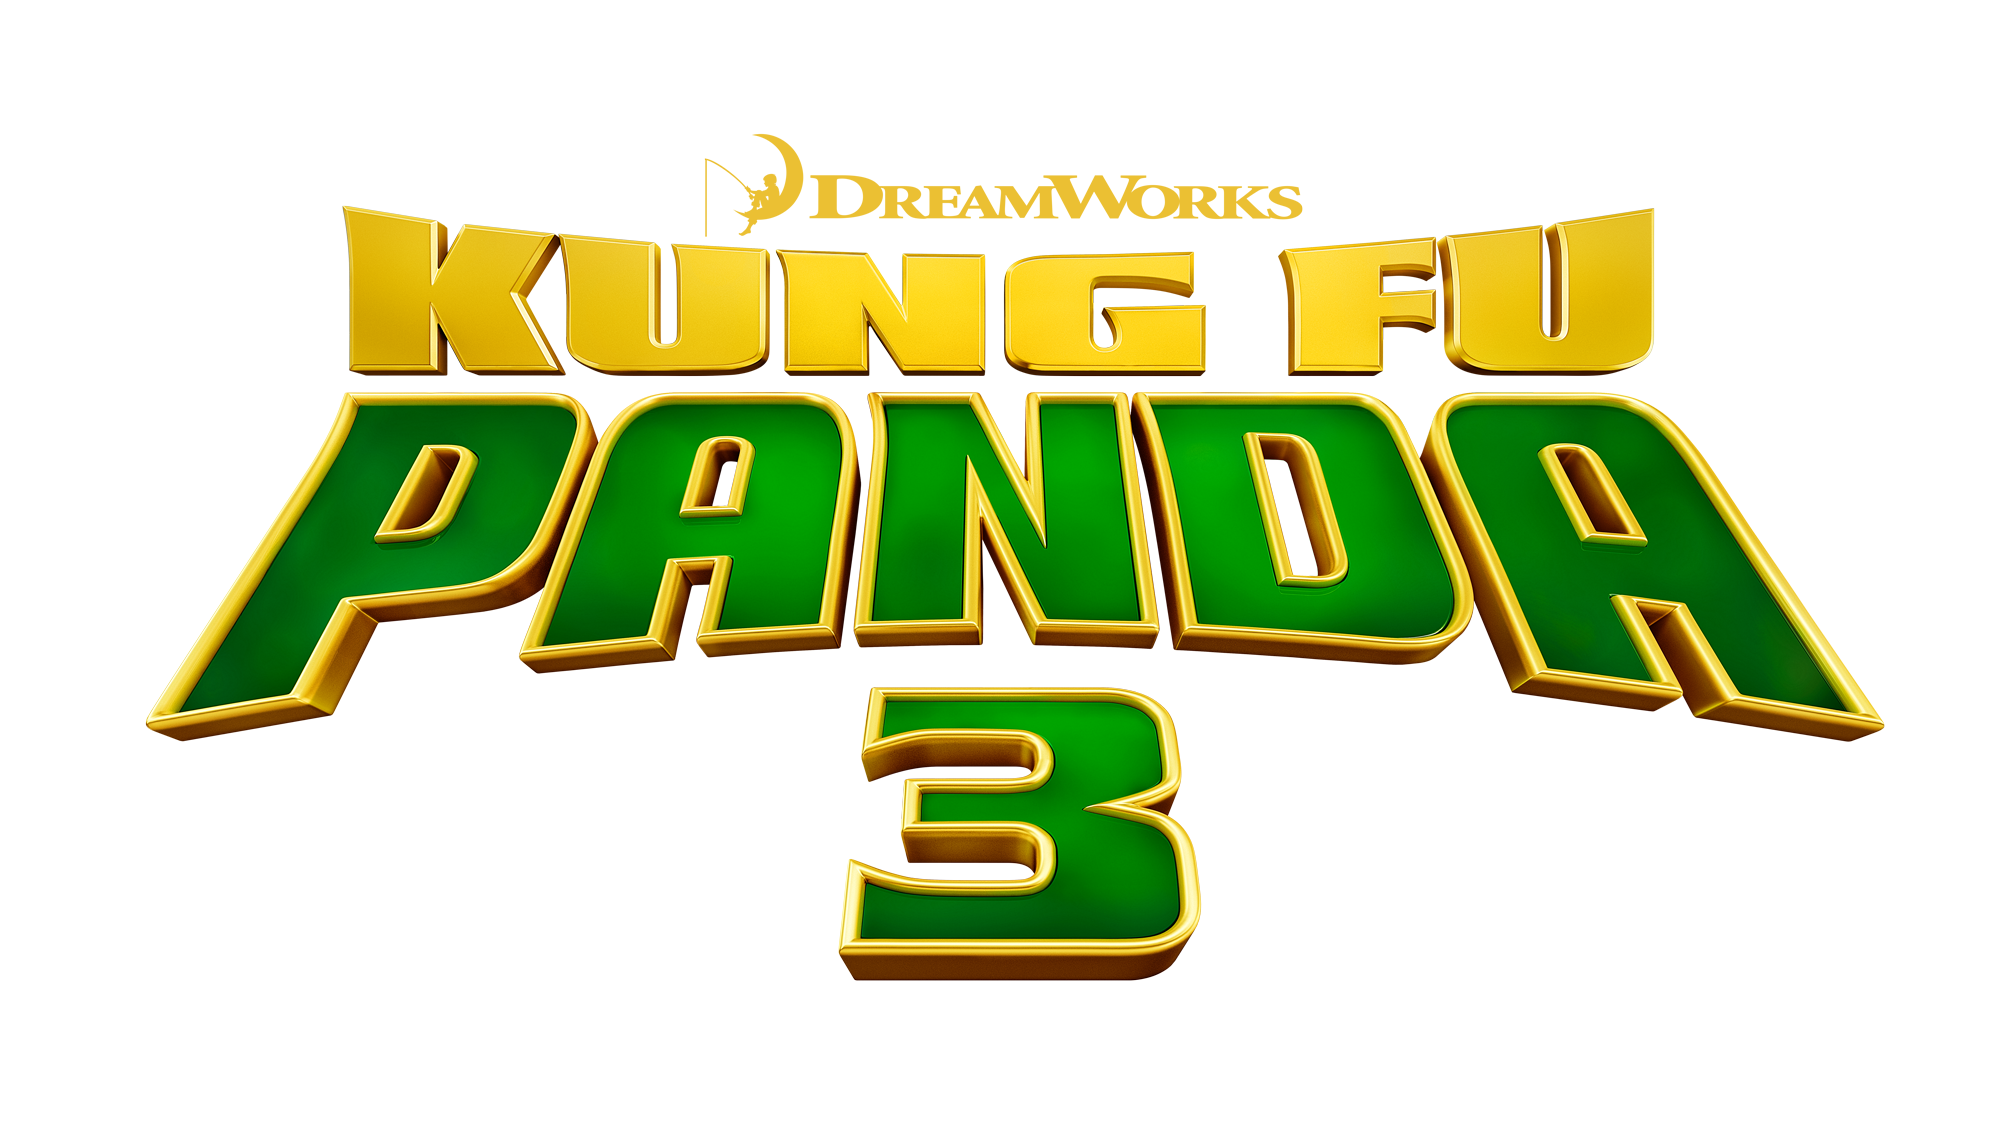 Kung fu panda logo png. South bay galleria redondo